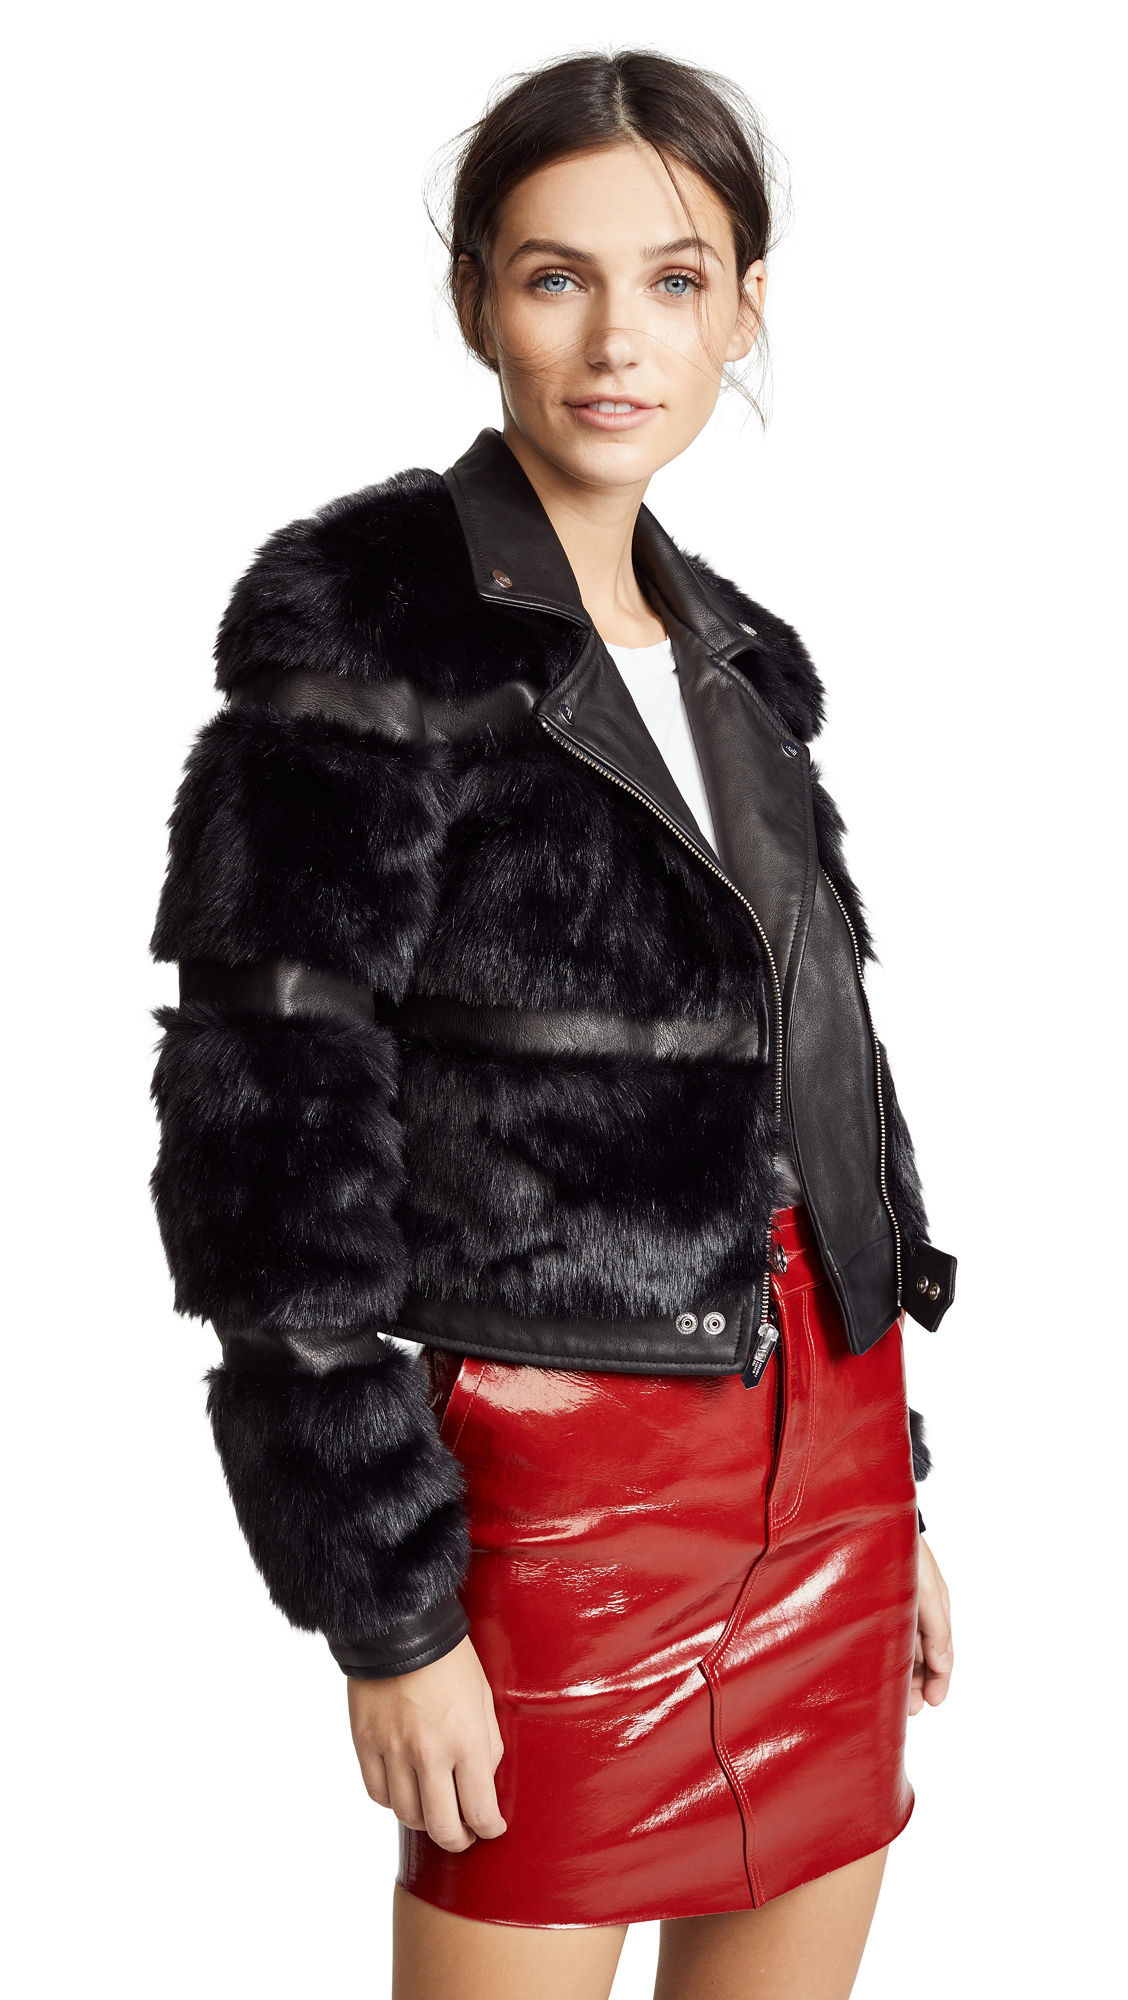 The Mighty Company Bristol Faux Fur Moto Jacket - Black